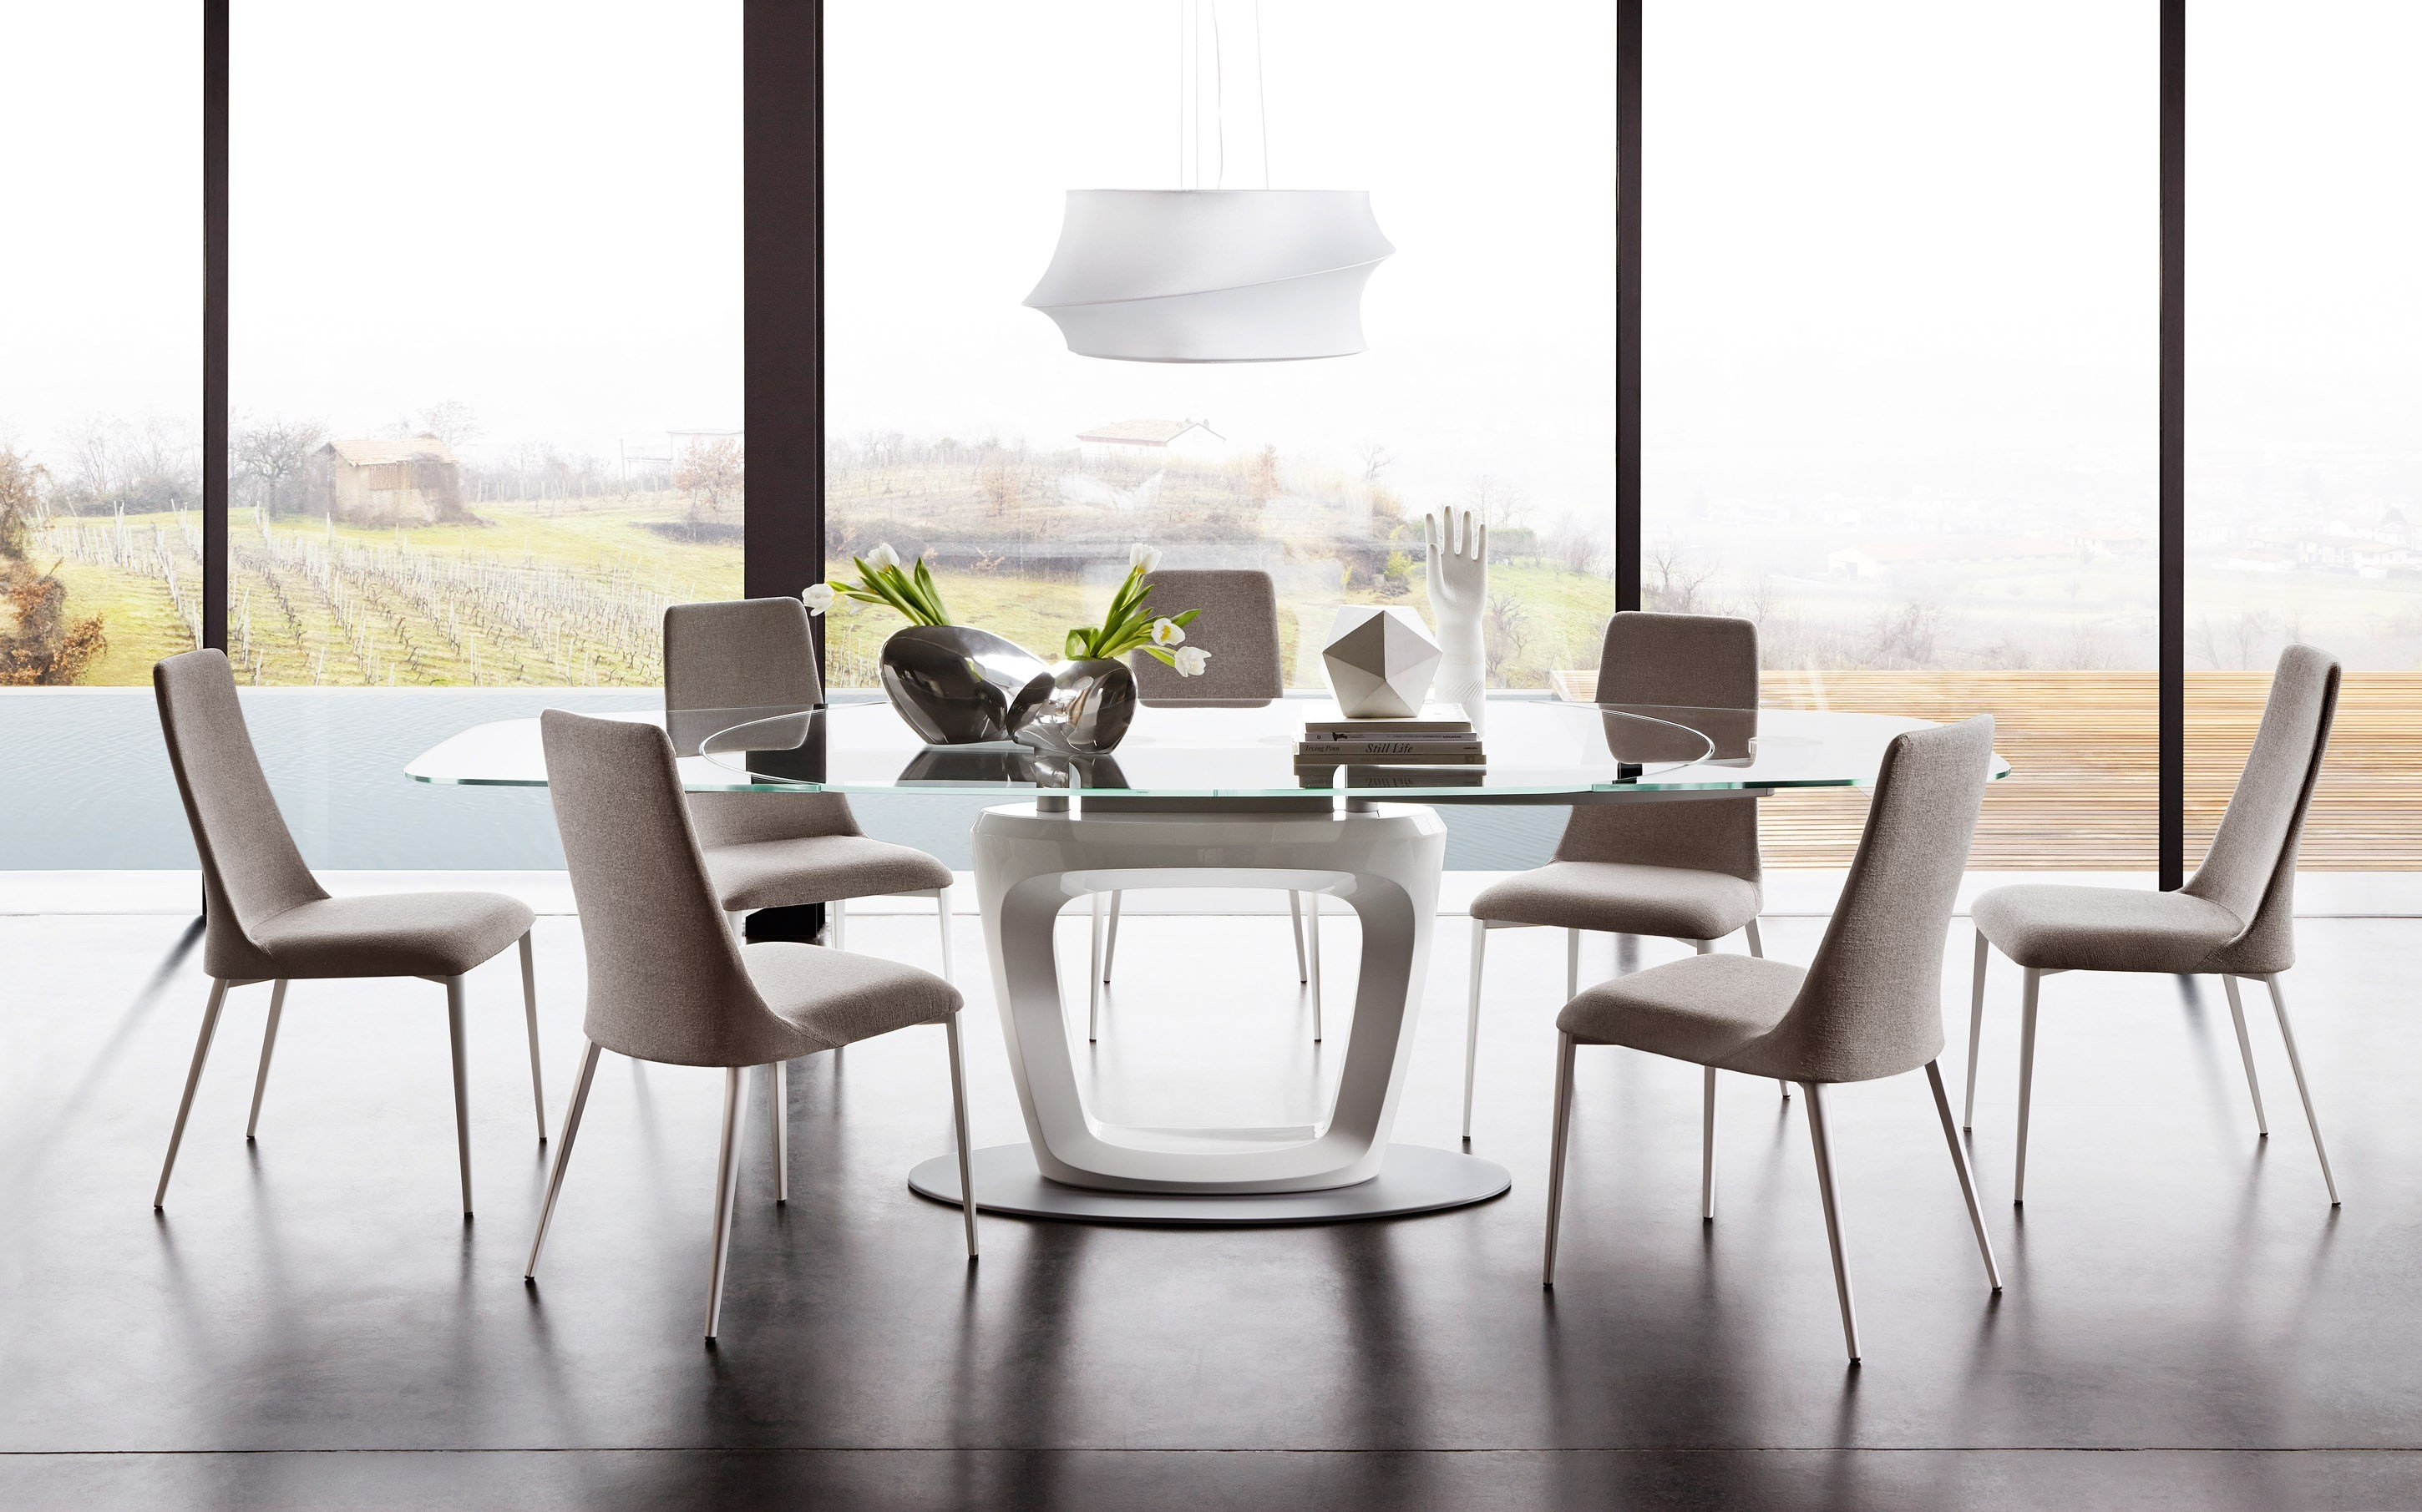 Orbital extending table by calligaris design pininfarina for Table salle manger taupe